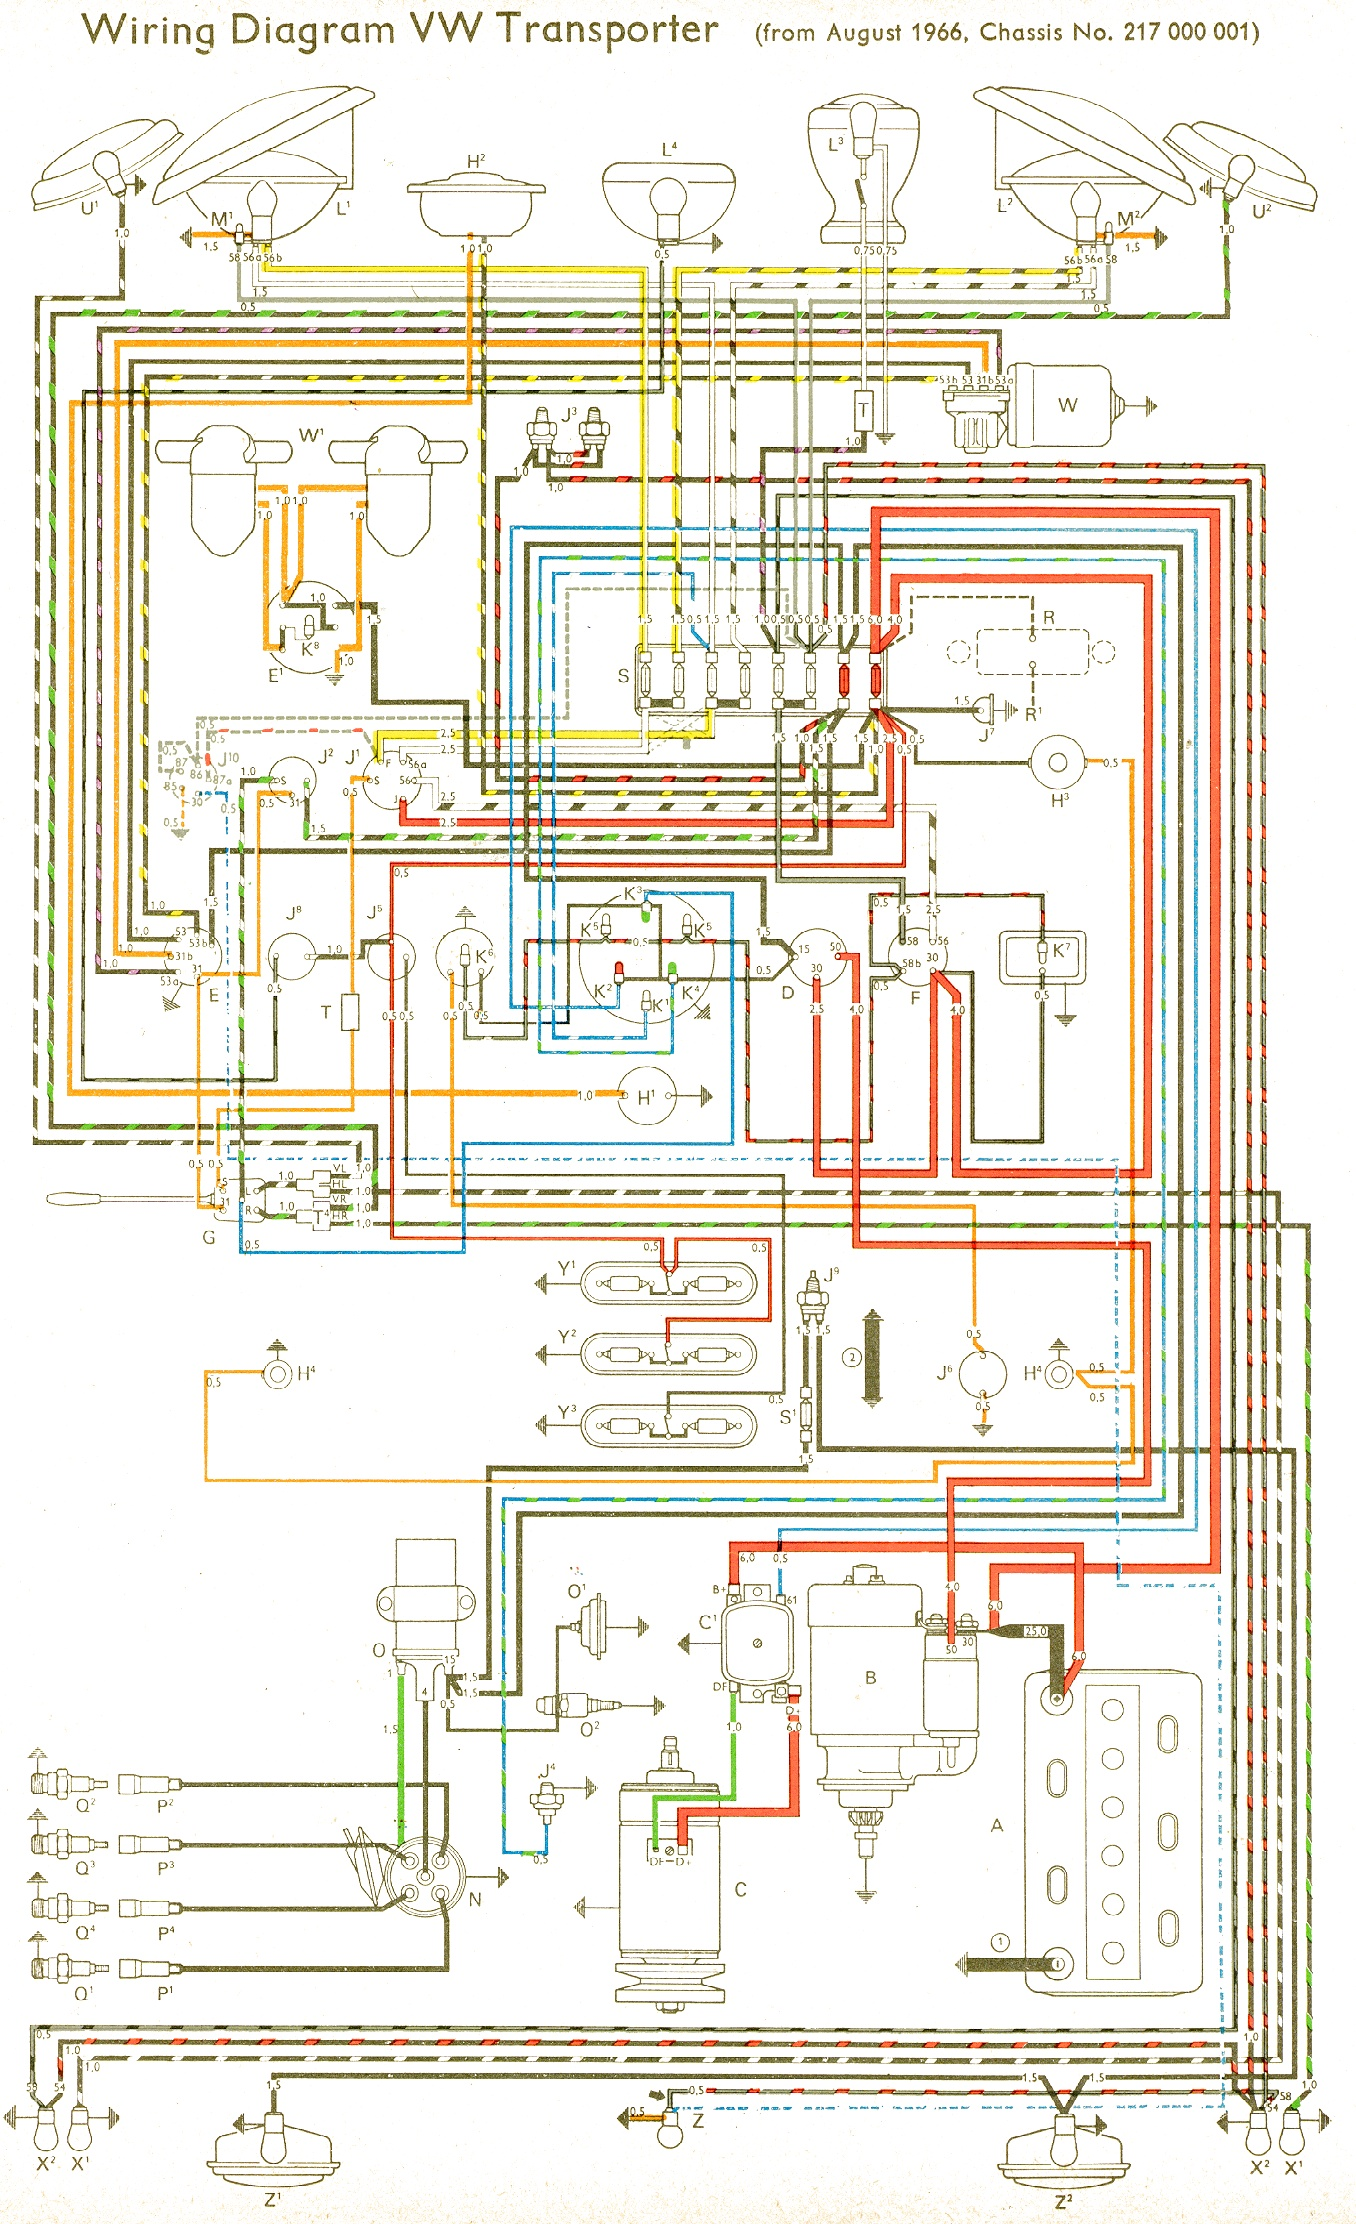 bus 66 bus wiring diagram vw wiring harness diagram \u2022 wiring diagrams j blue bird bus wiring diagrams at alyssarenee.co